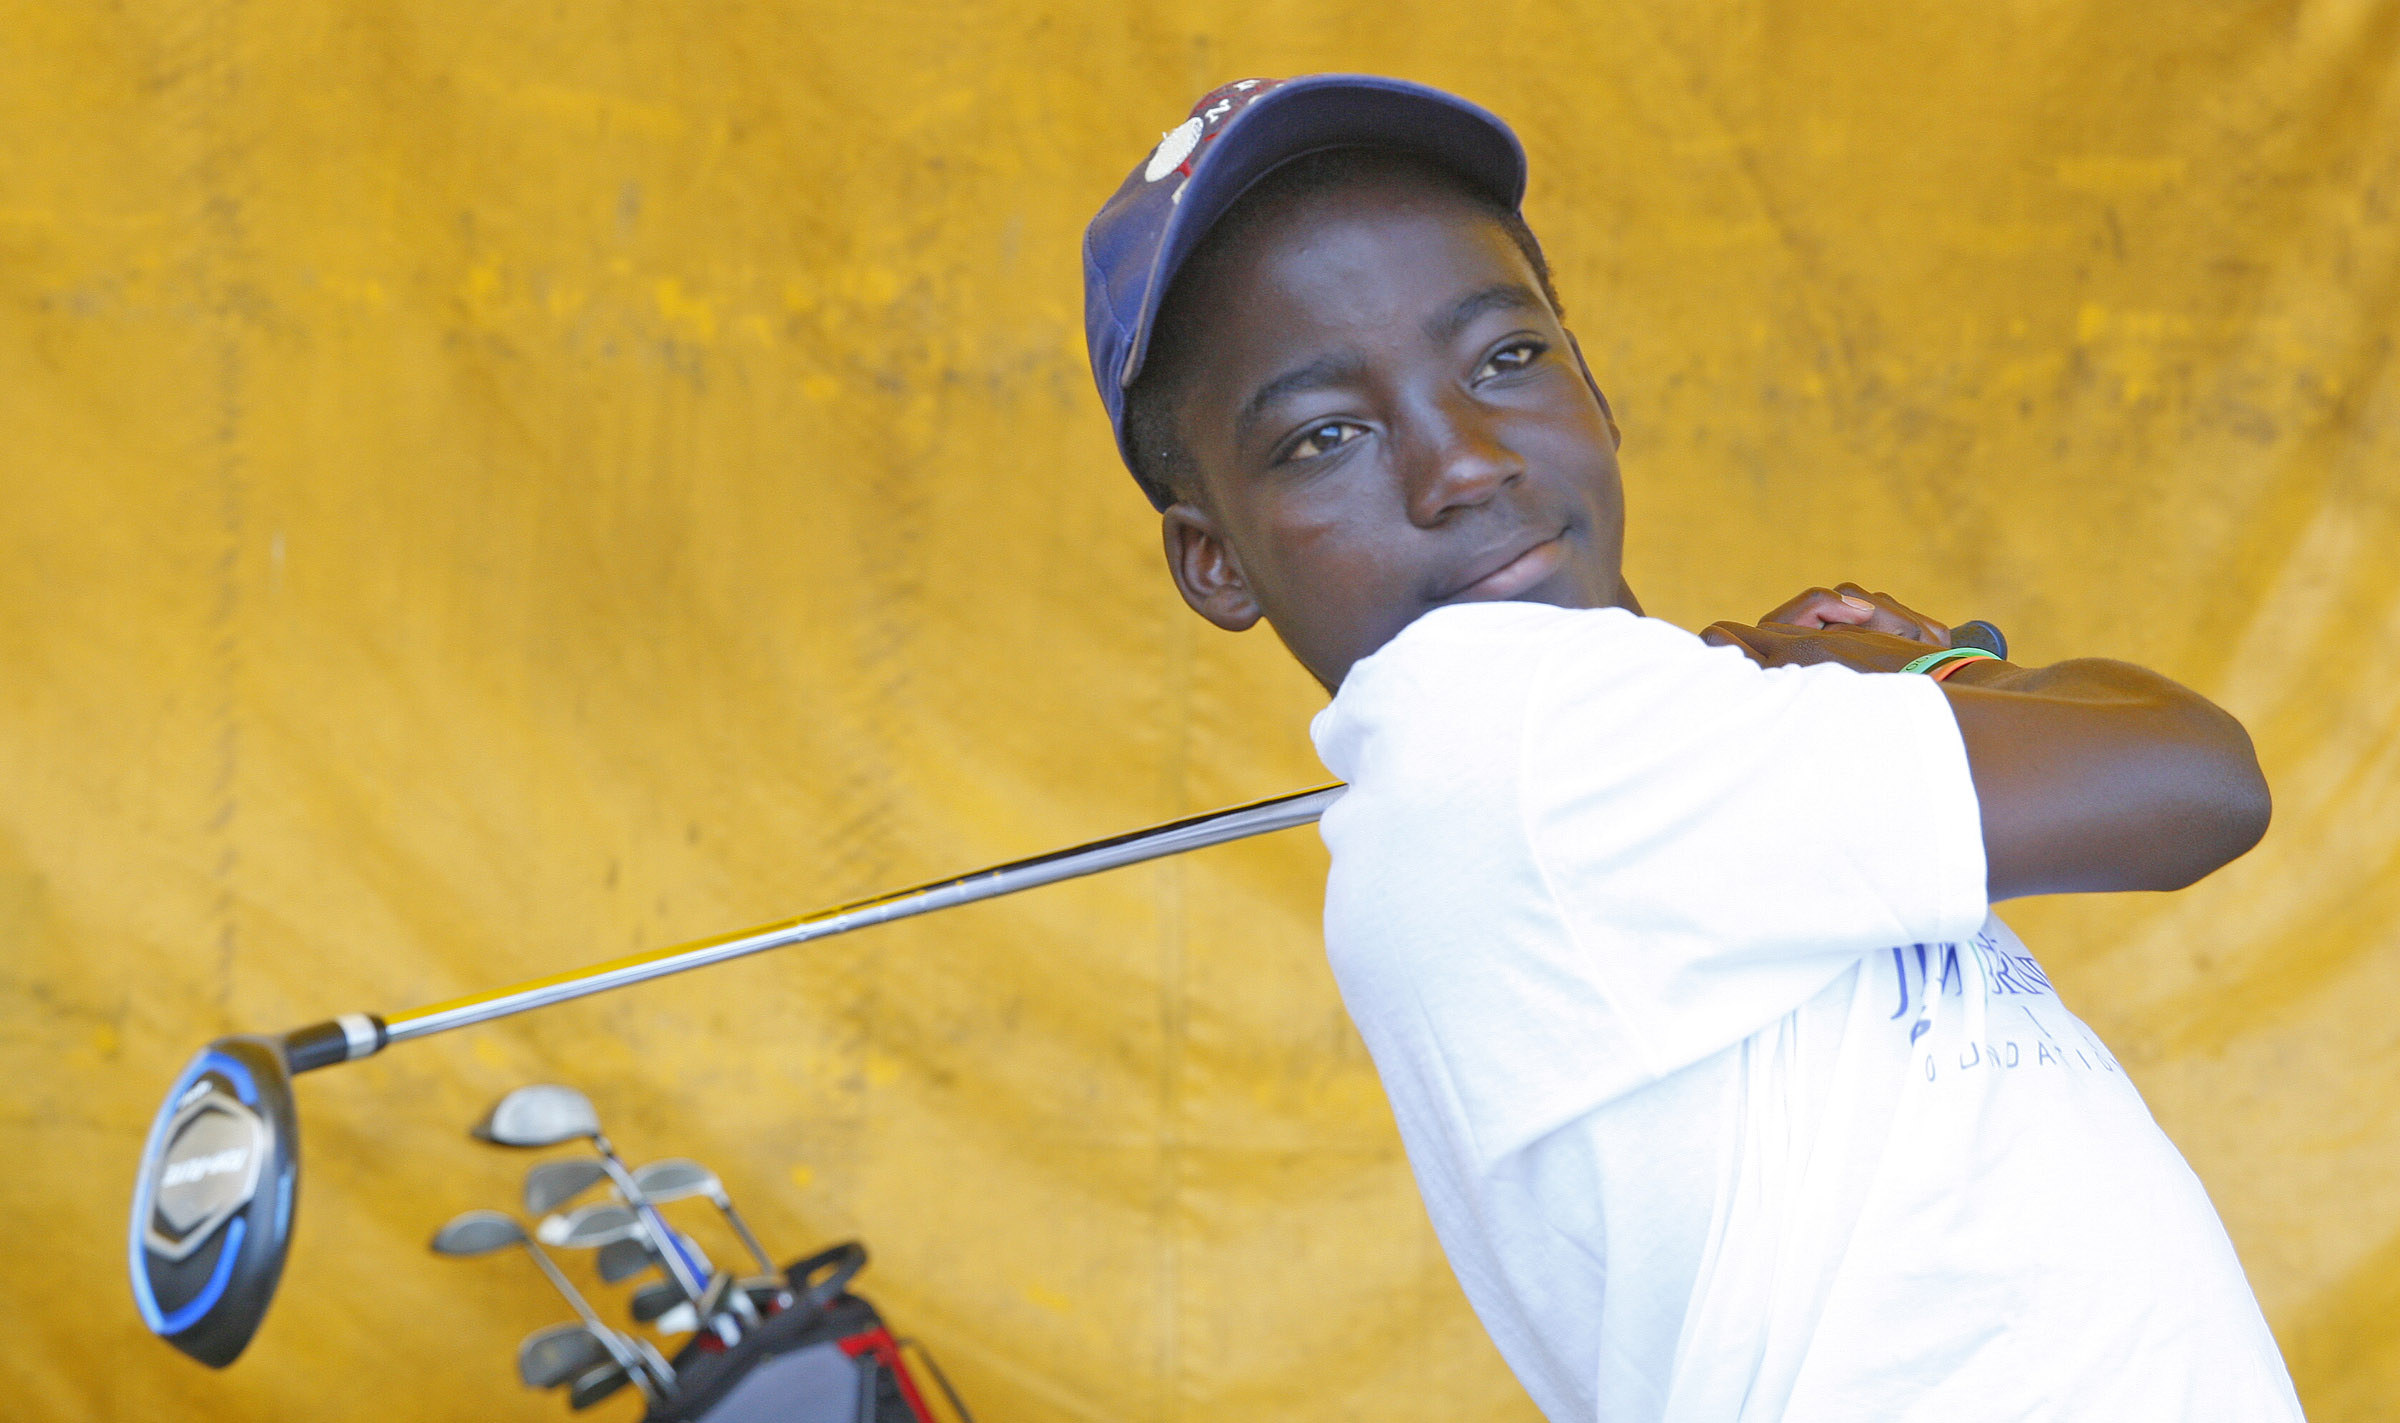 Winston Martey works on his golf game at the Jim Horne golf camp at the Airport driving range on Wednesday, Aug. 3, 2016. (Harry Scull Jr./Buffalo News)